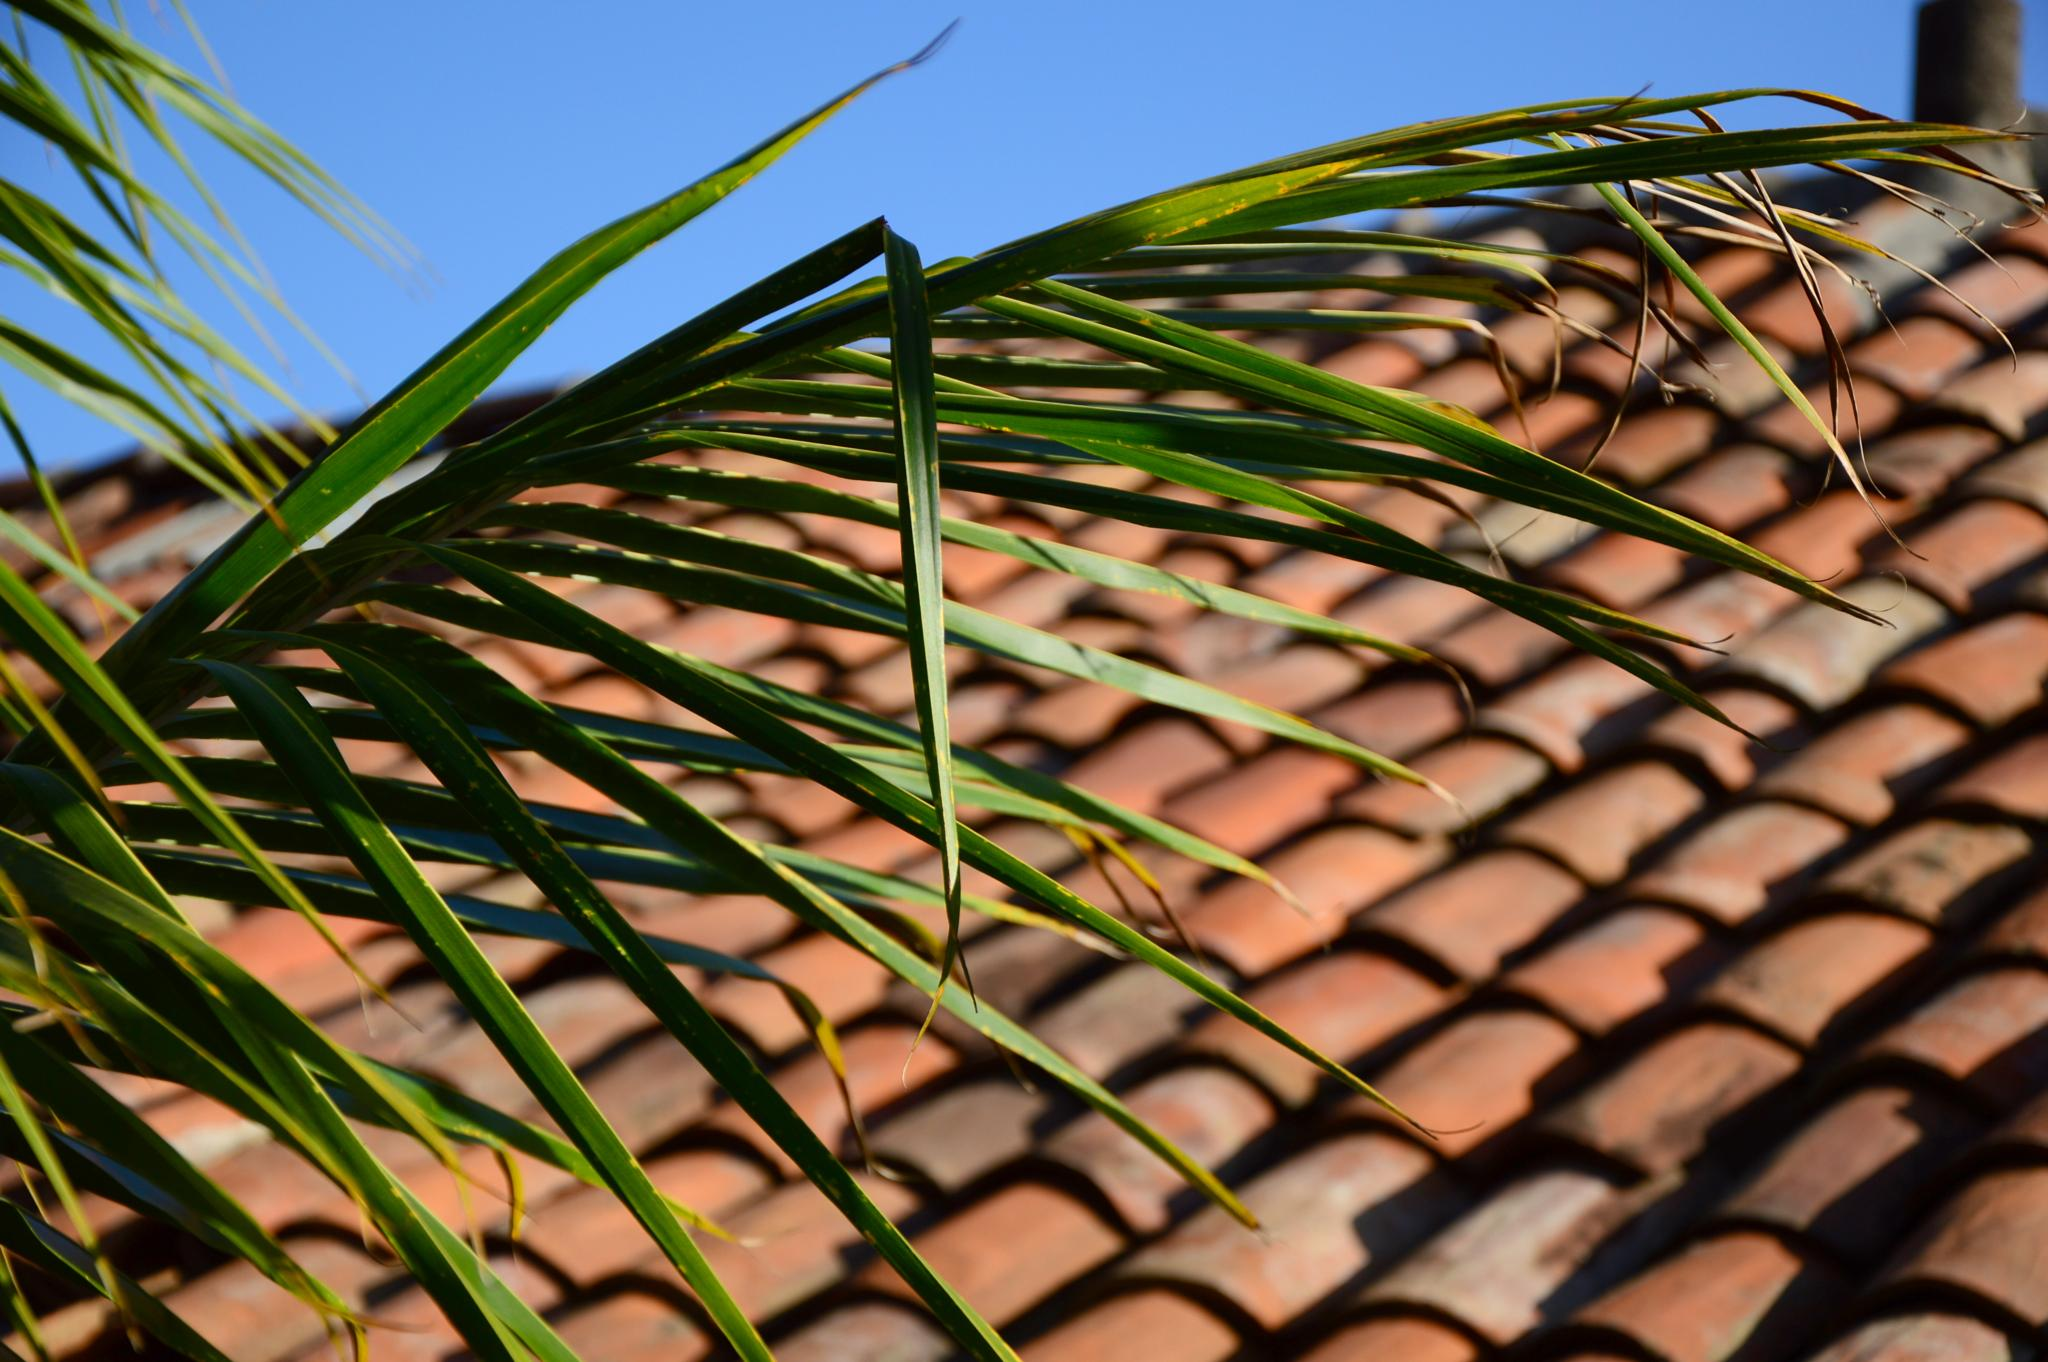 Palm leaves and tiles by Ives Martinez